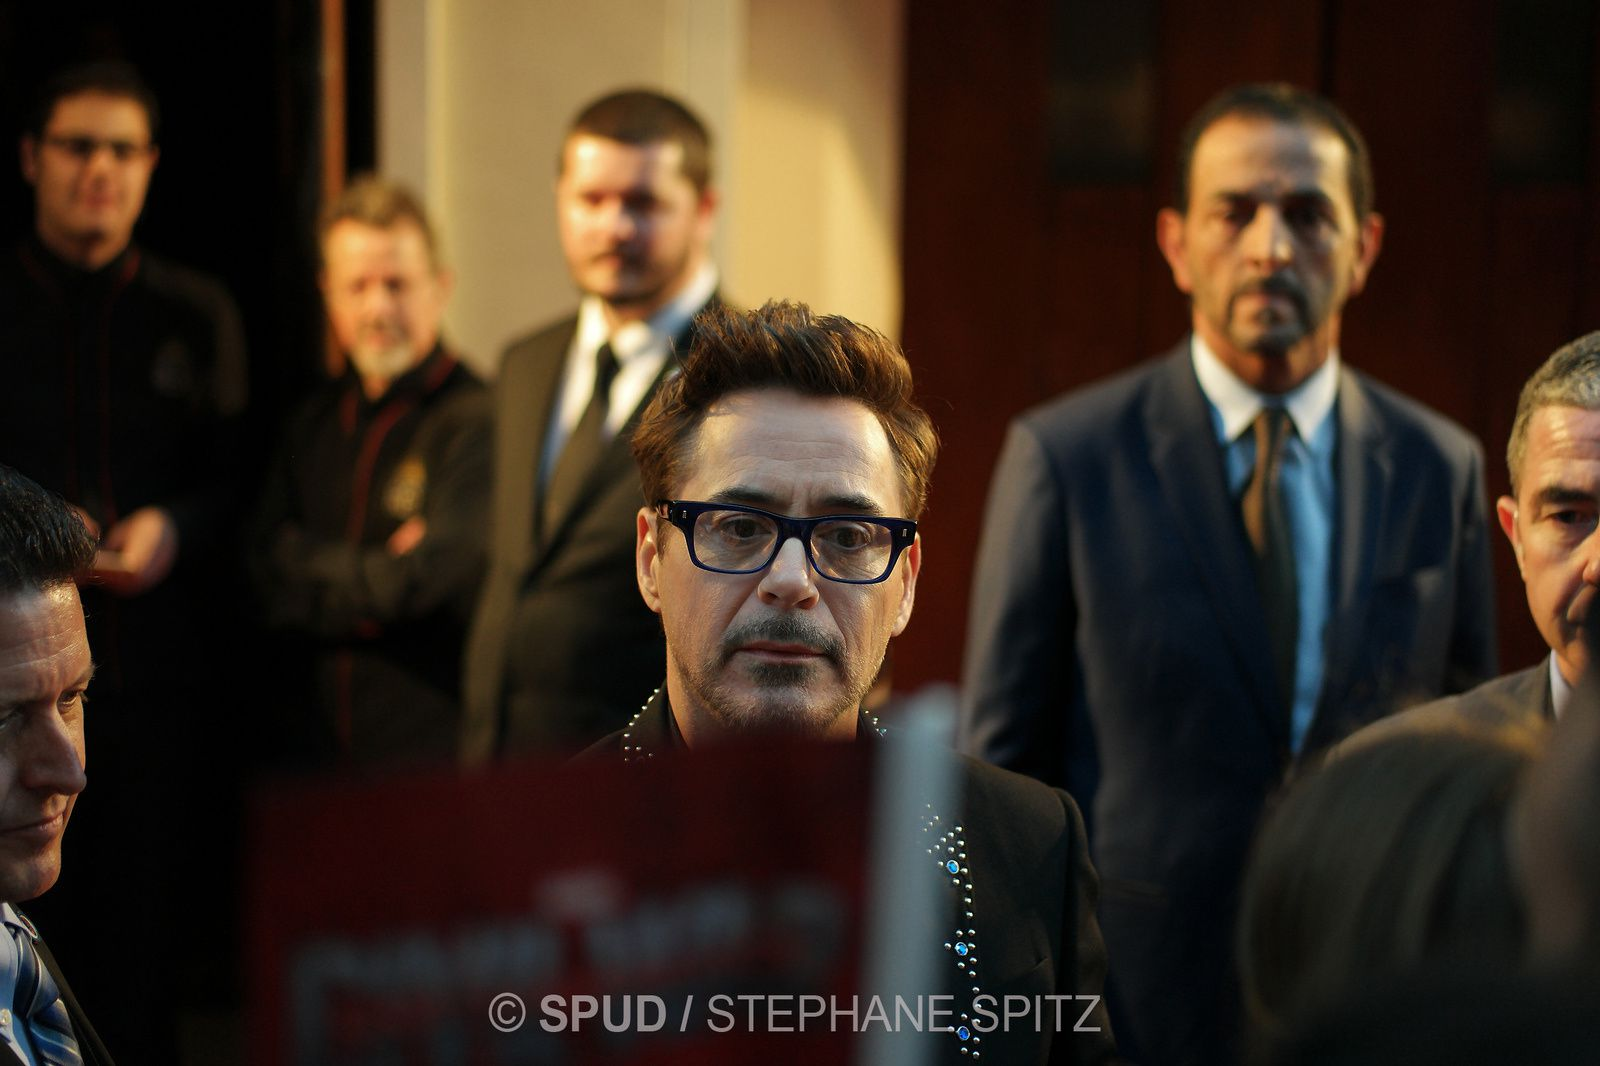 ROBERT DOWNEY Jr - CAPTAIN AMERICA au Grand Rex (18/04/2016)